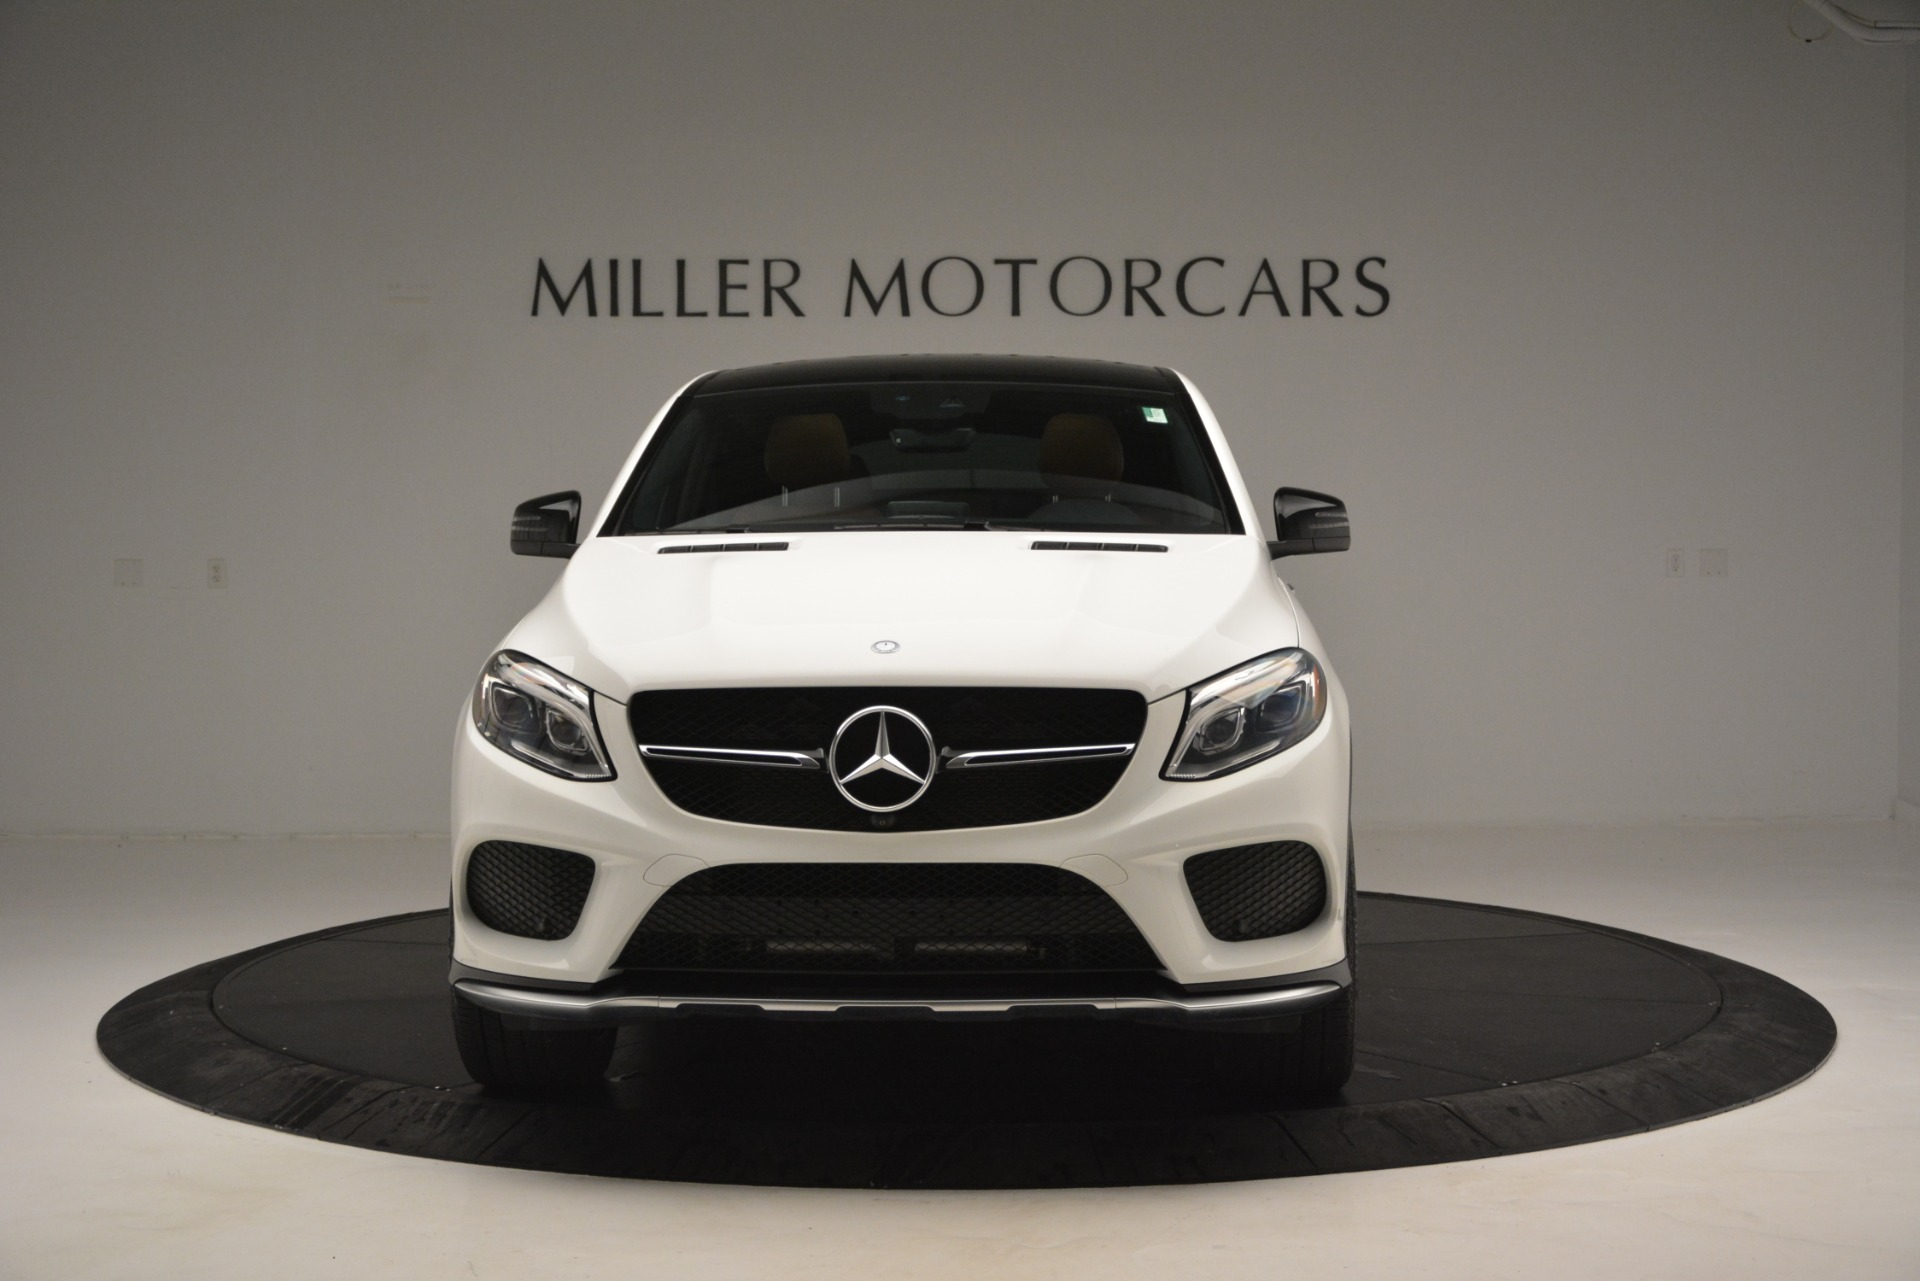 Used 2016 Mercedes-Benz GLE 450 AMG Coupe 4MATIC For Sale In Greenwich, CT 2787_p12